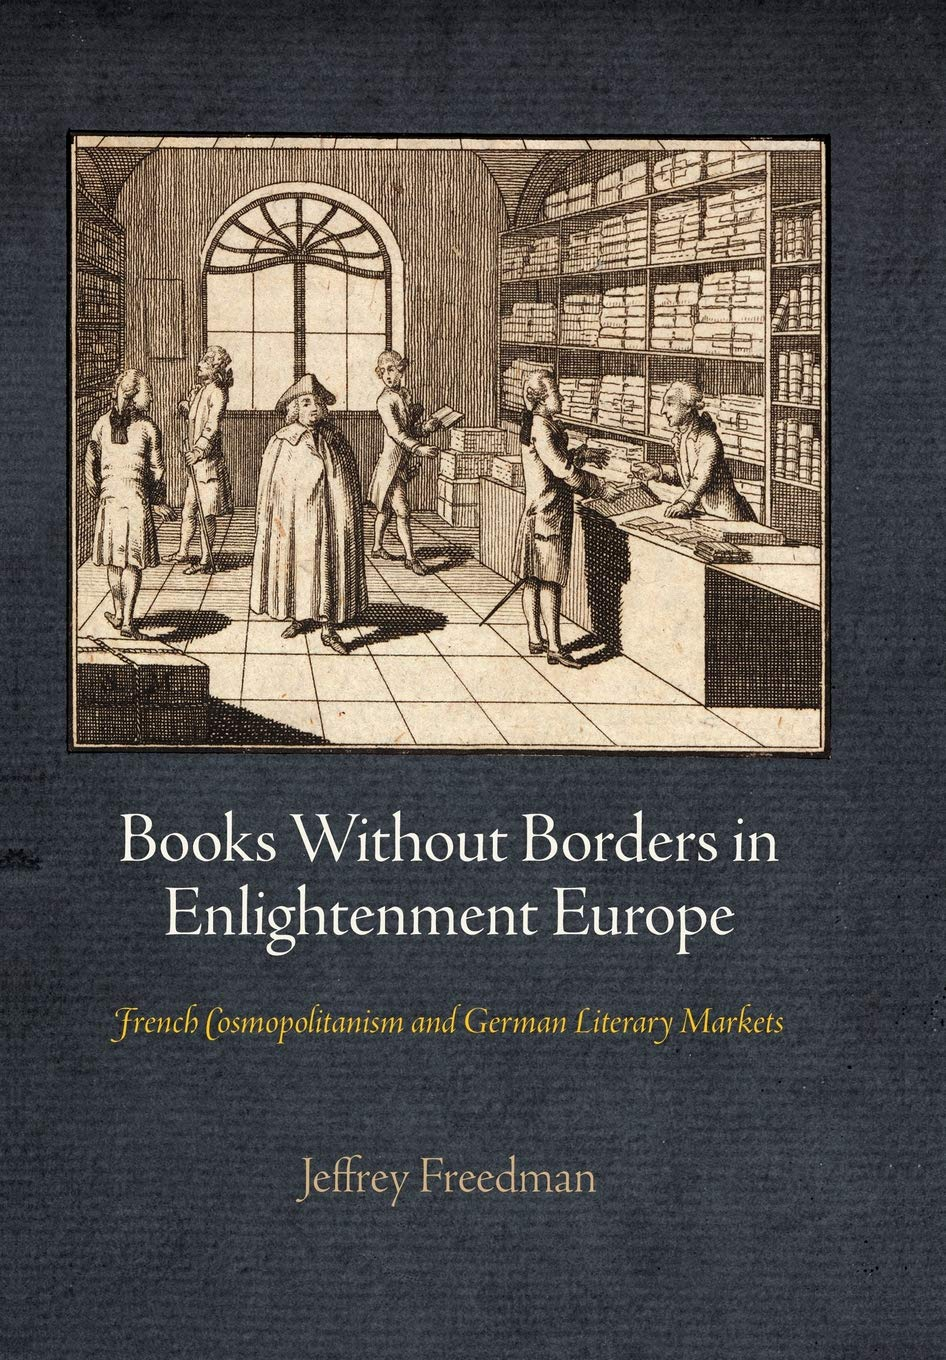 Books Without Borders in Enlightenment Europe: French Cosmopolitanism and German Literary Markets (Material Texts) by Brand: University of Pennsylvania Press